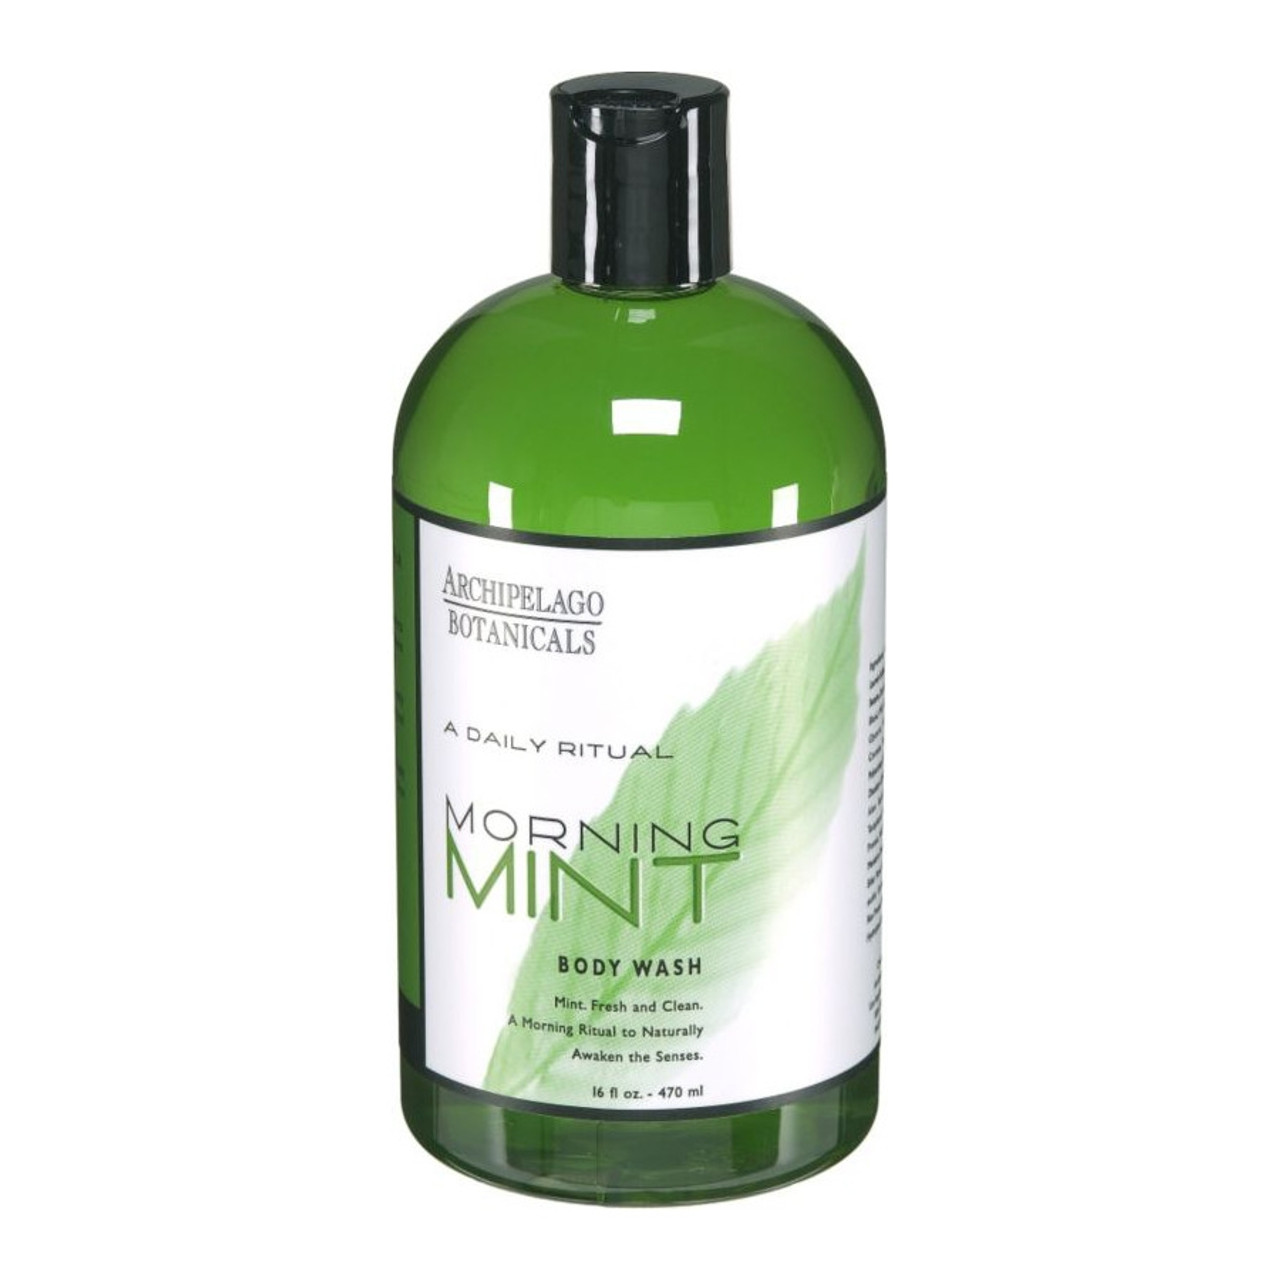 Archipelago Morning Mint Body Wash - 16 OZ